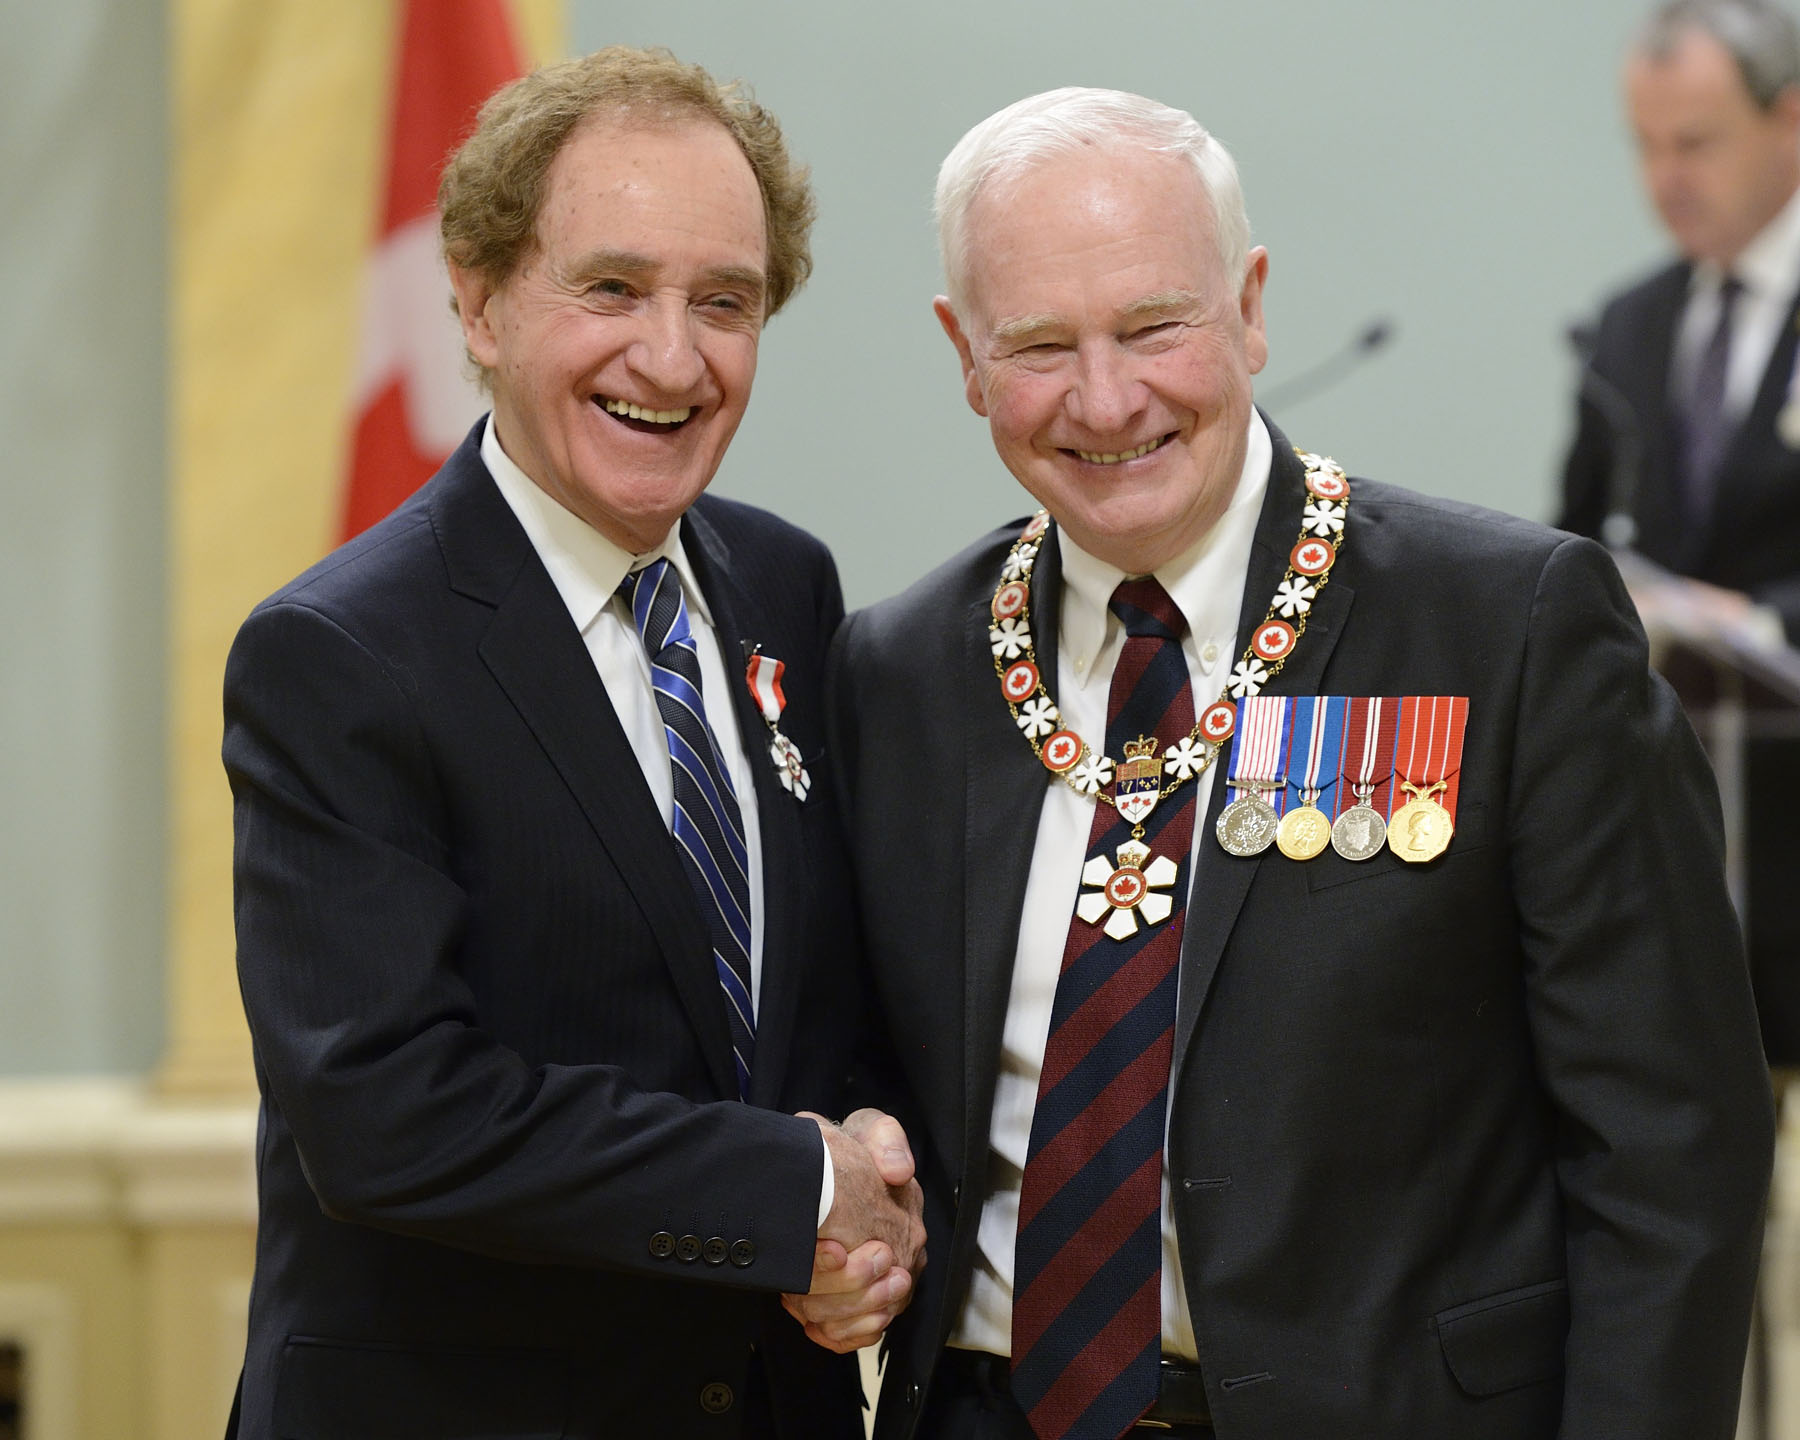 James K. Gordon, C.M. (Sudbury, Ontario) has made visionary contributions to the social and economic fabric of his community. As Sudbury's longest-serving mayor, he was instrumental in changing the region's business landscape from a mining town to a more economically diverse area that now includes new sectors such as cancer treatment, retail, science and technology. He continues to champion such causes as access to health care, notably by helping to establish the first medical school in northern Ontario.